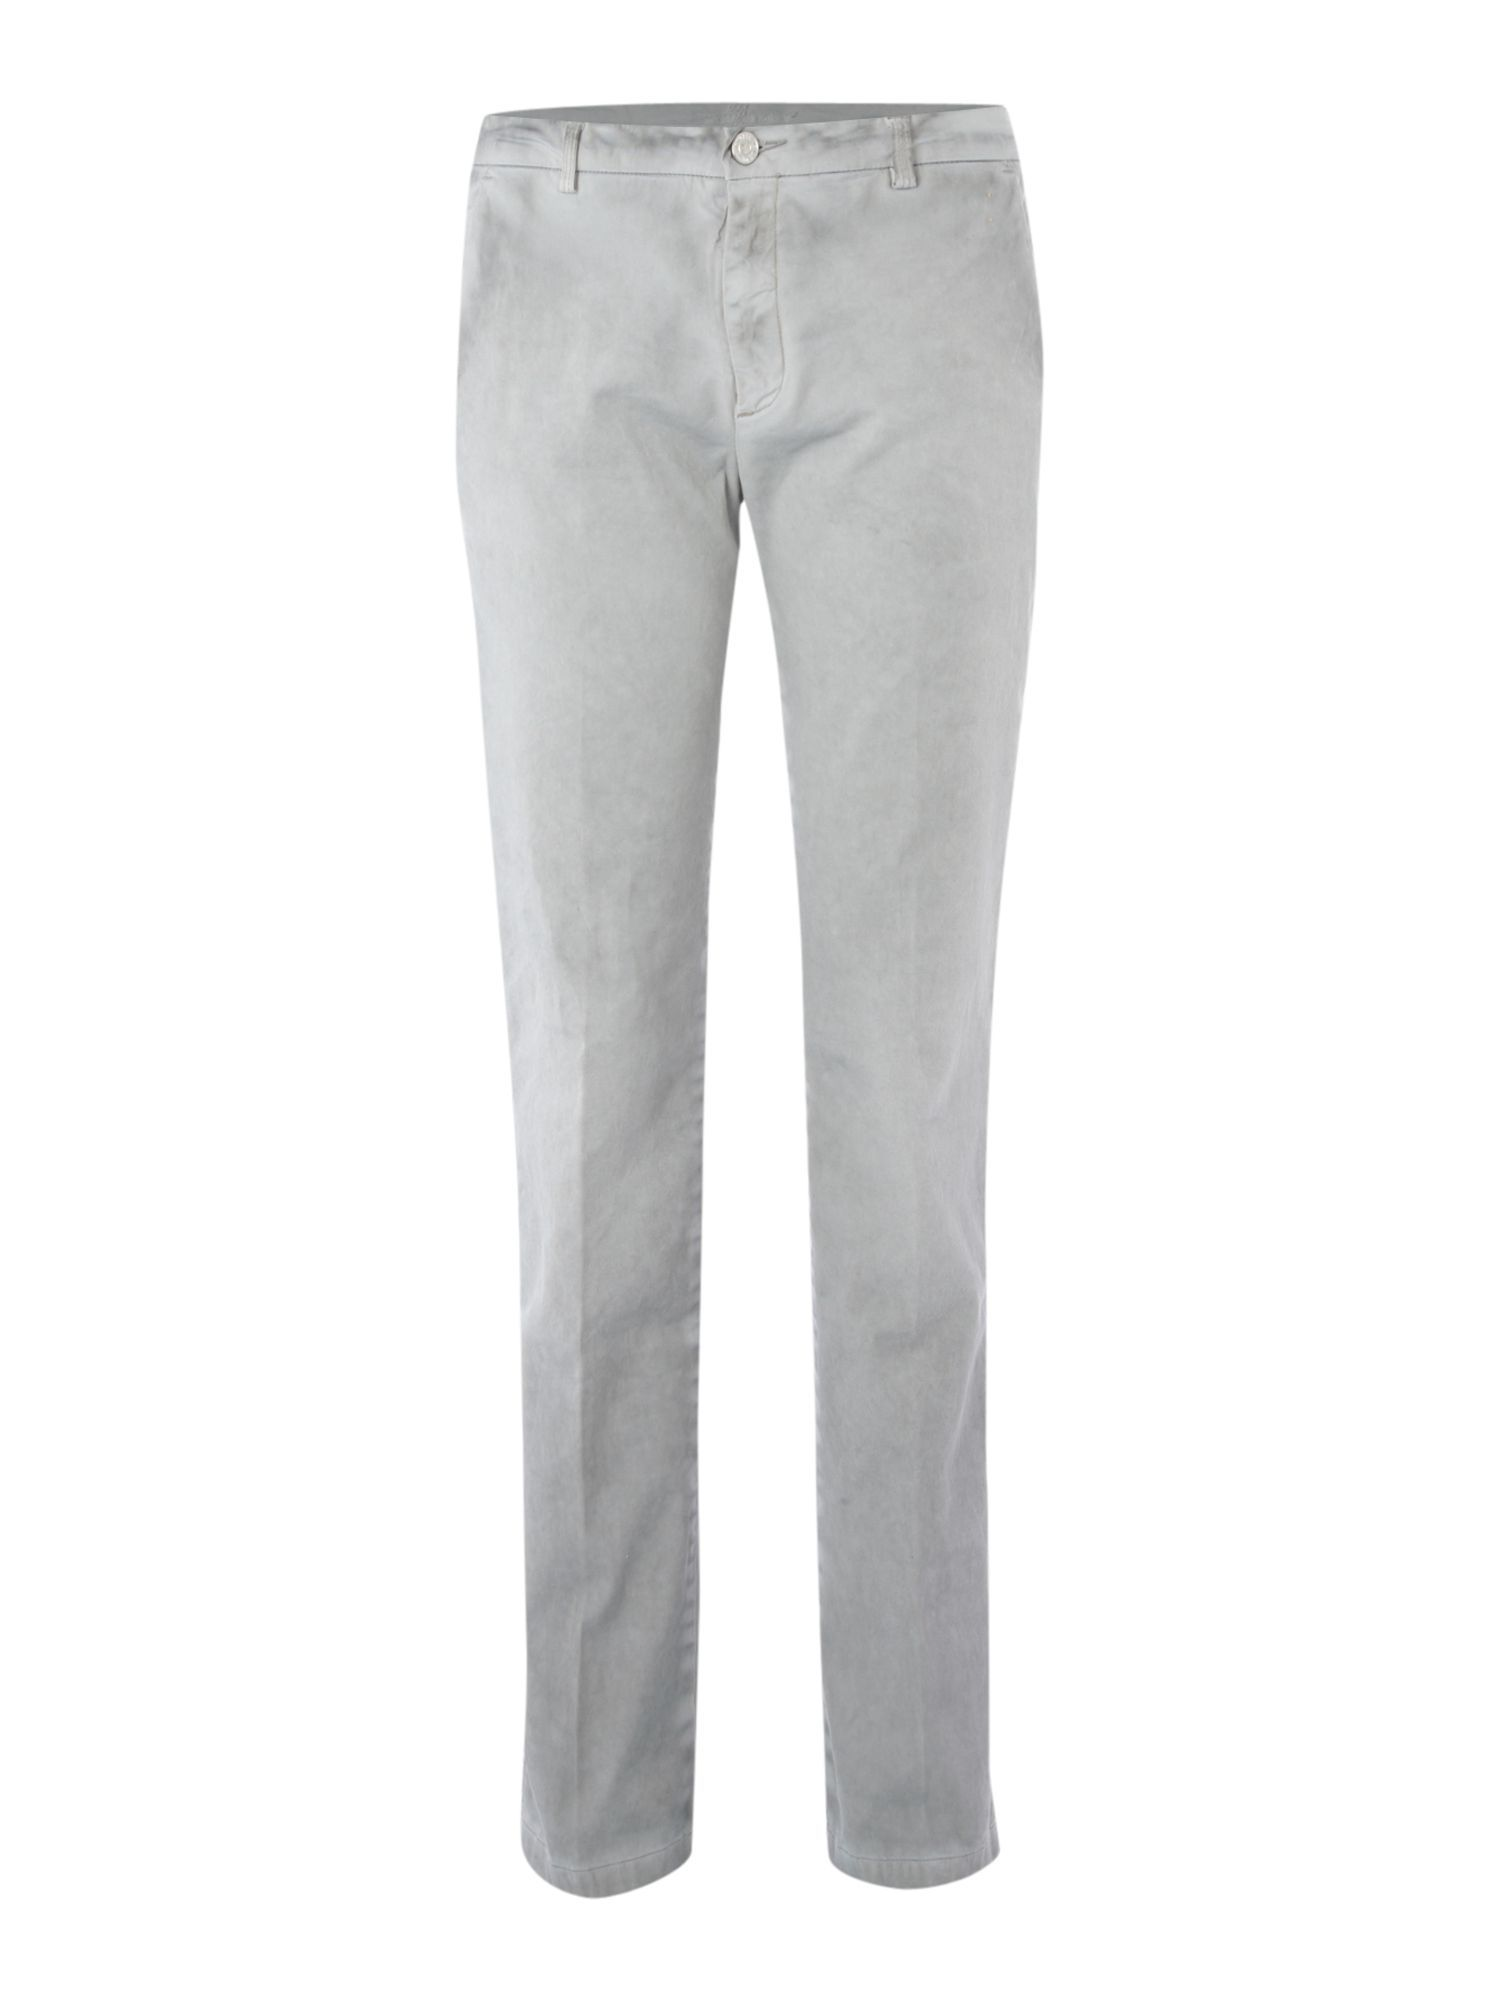 Women&#x27;s Roaxanne Slim Leg Chino Jeans, Grey - style: skinny leg; length: standard; waist: low rise; pocket detail: traditional 5 pocket; predominant colour: light grey; occasions: casual; fibres: cotton - stretch